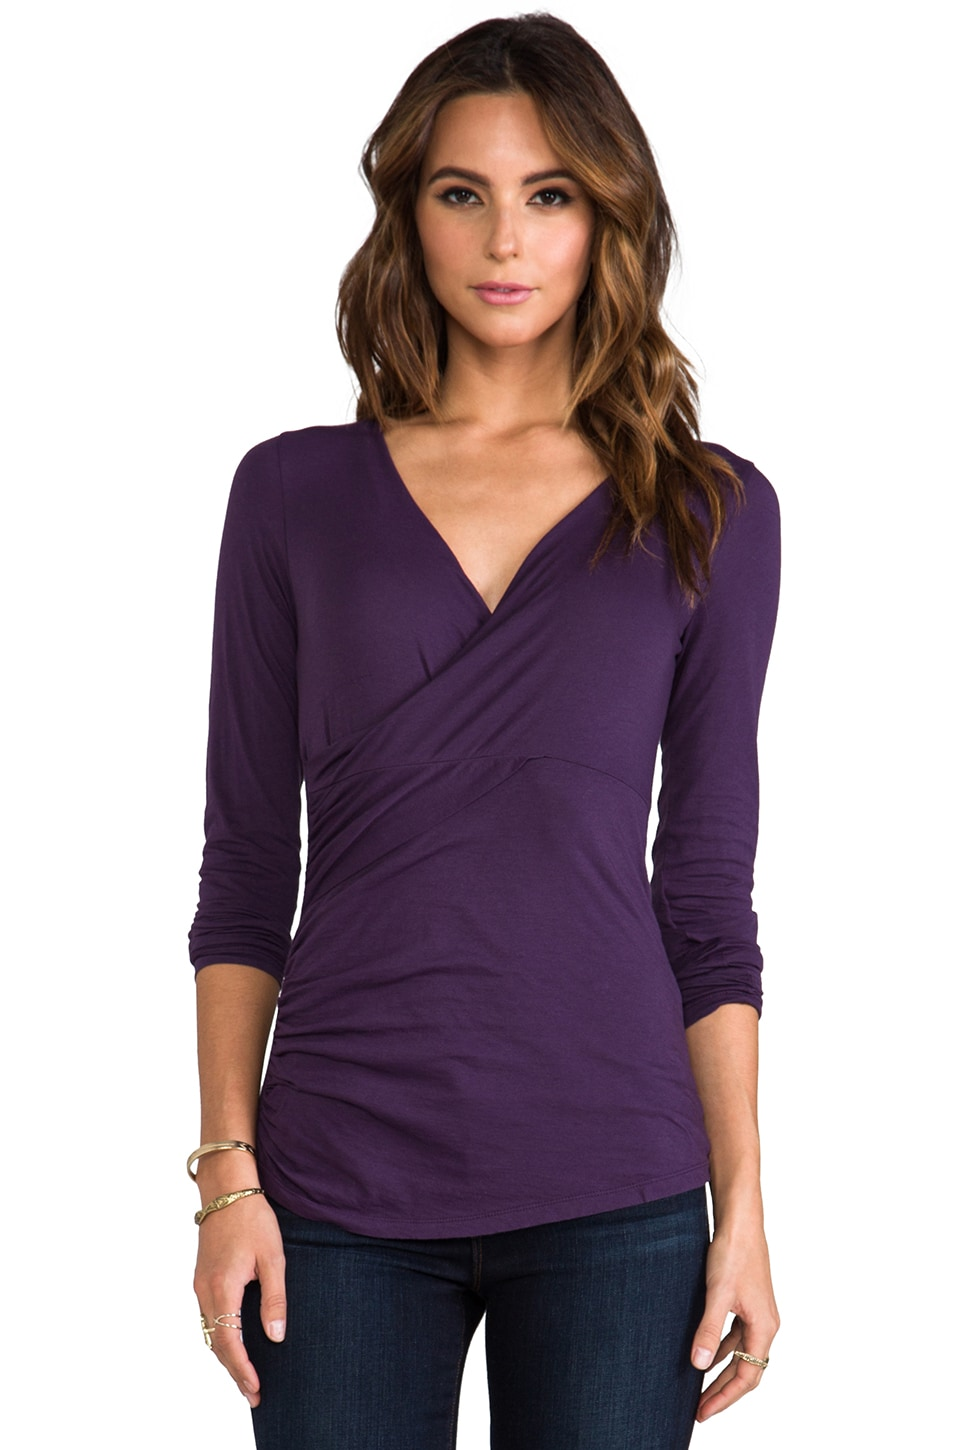 Velvet by Graham & Spencer Velvet Tisha Gauzy Whisper Wrap Top in Loubelia